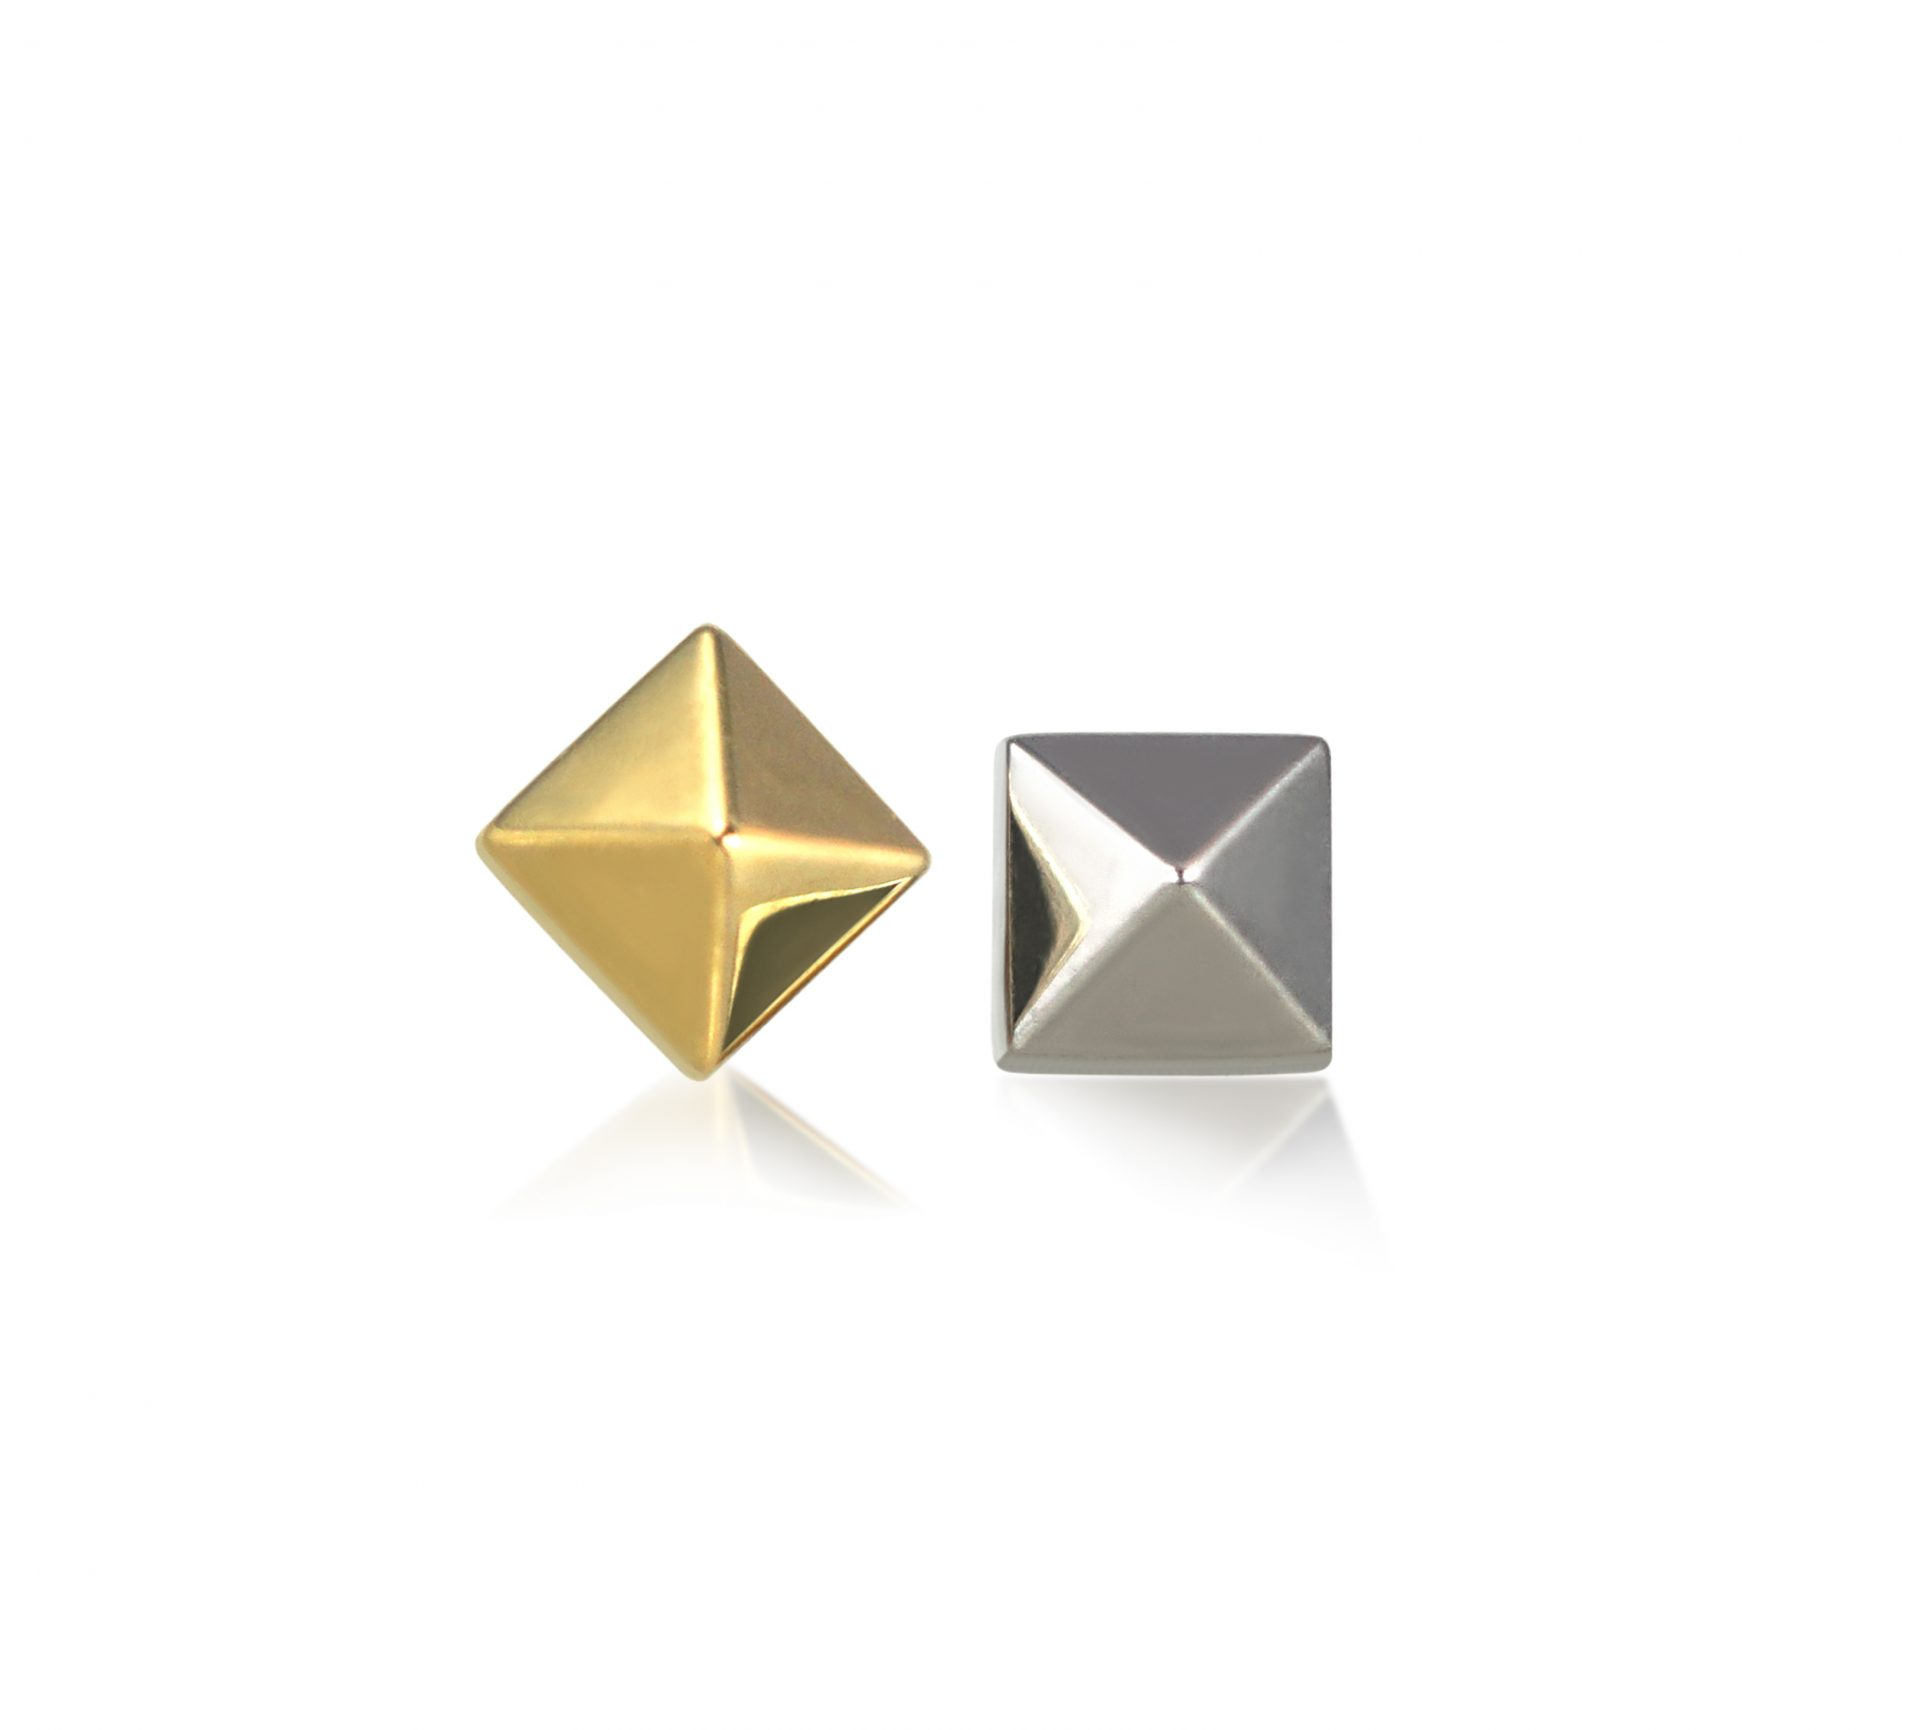 18k-white-yellow-gold-pyramid-screw-back-unisex-piercing-cartilage-stud-lena-cohen